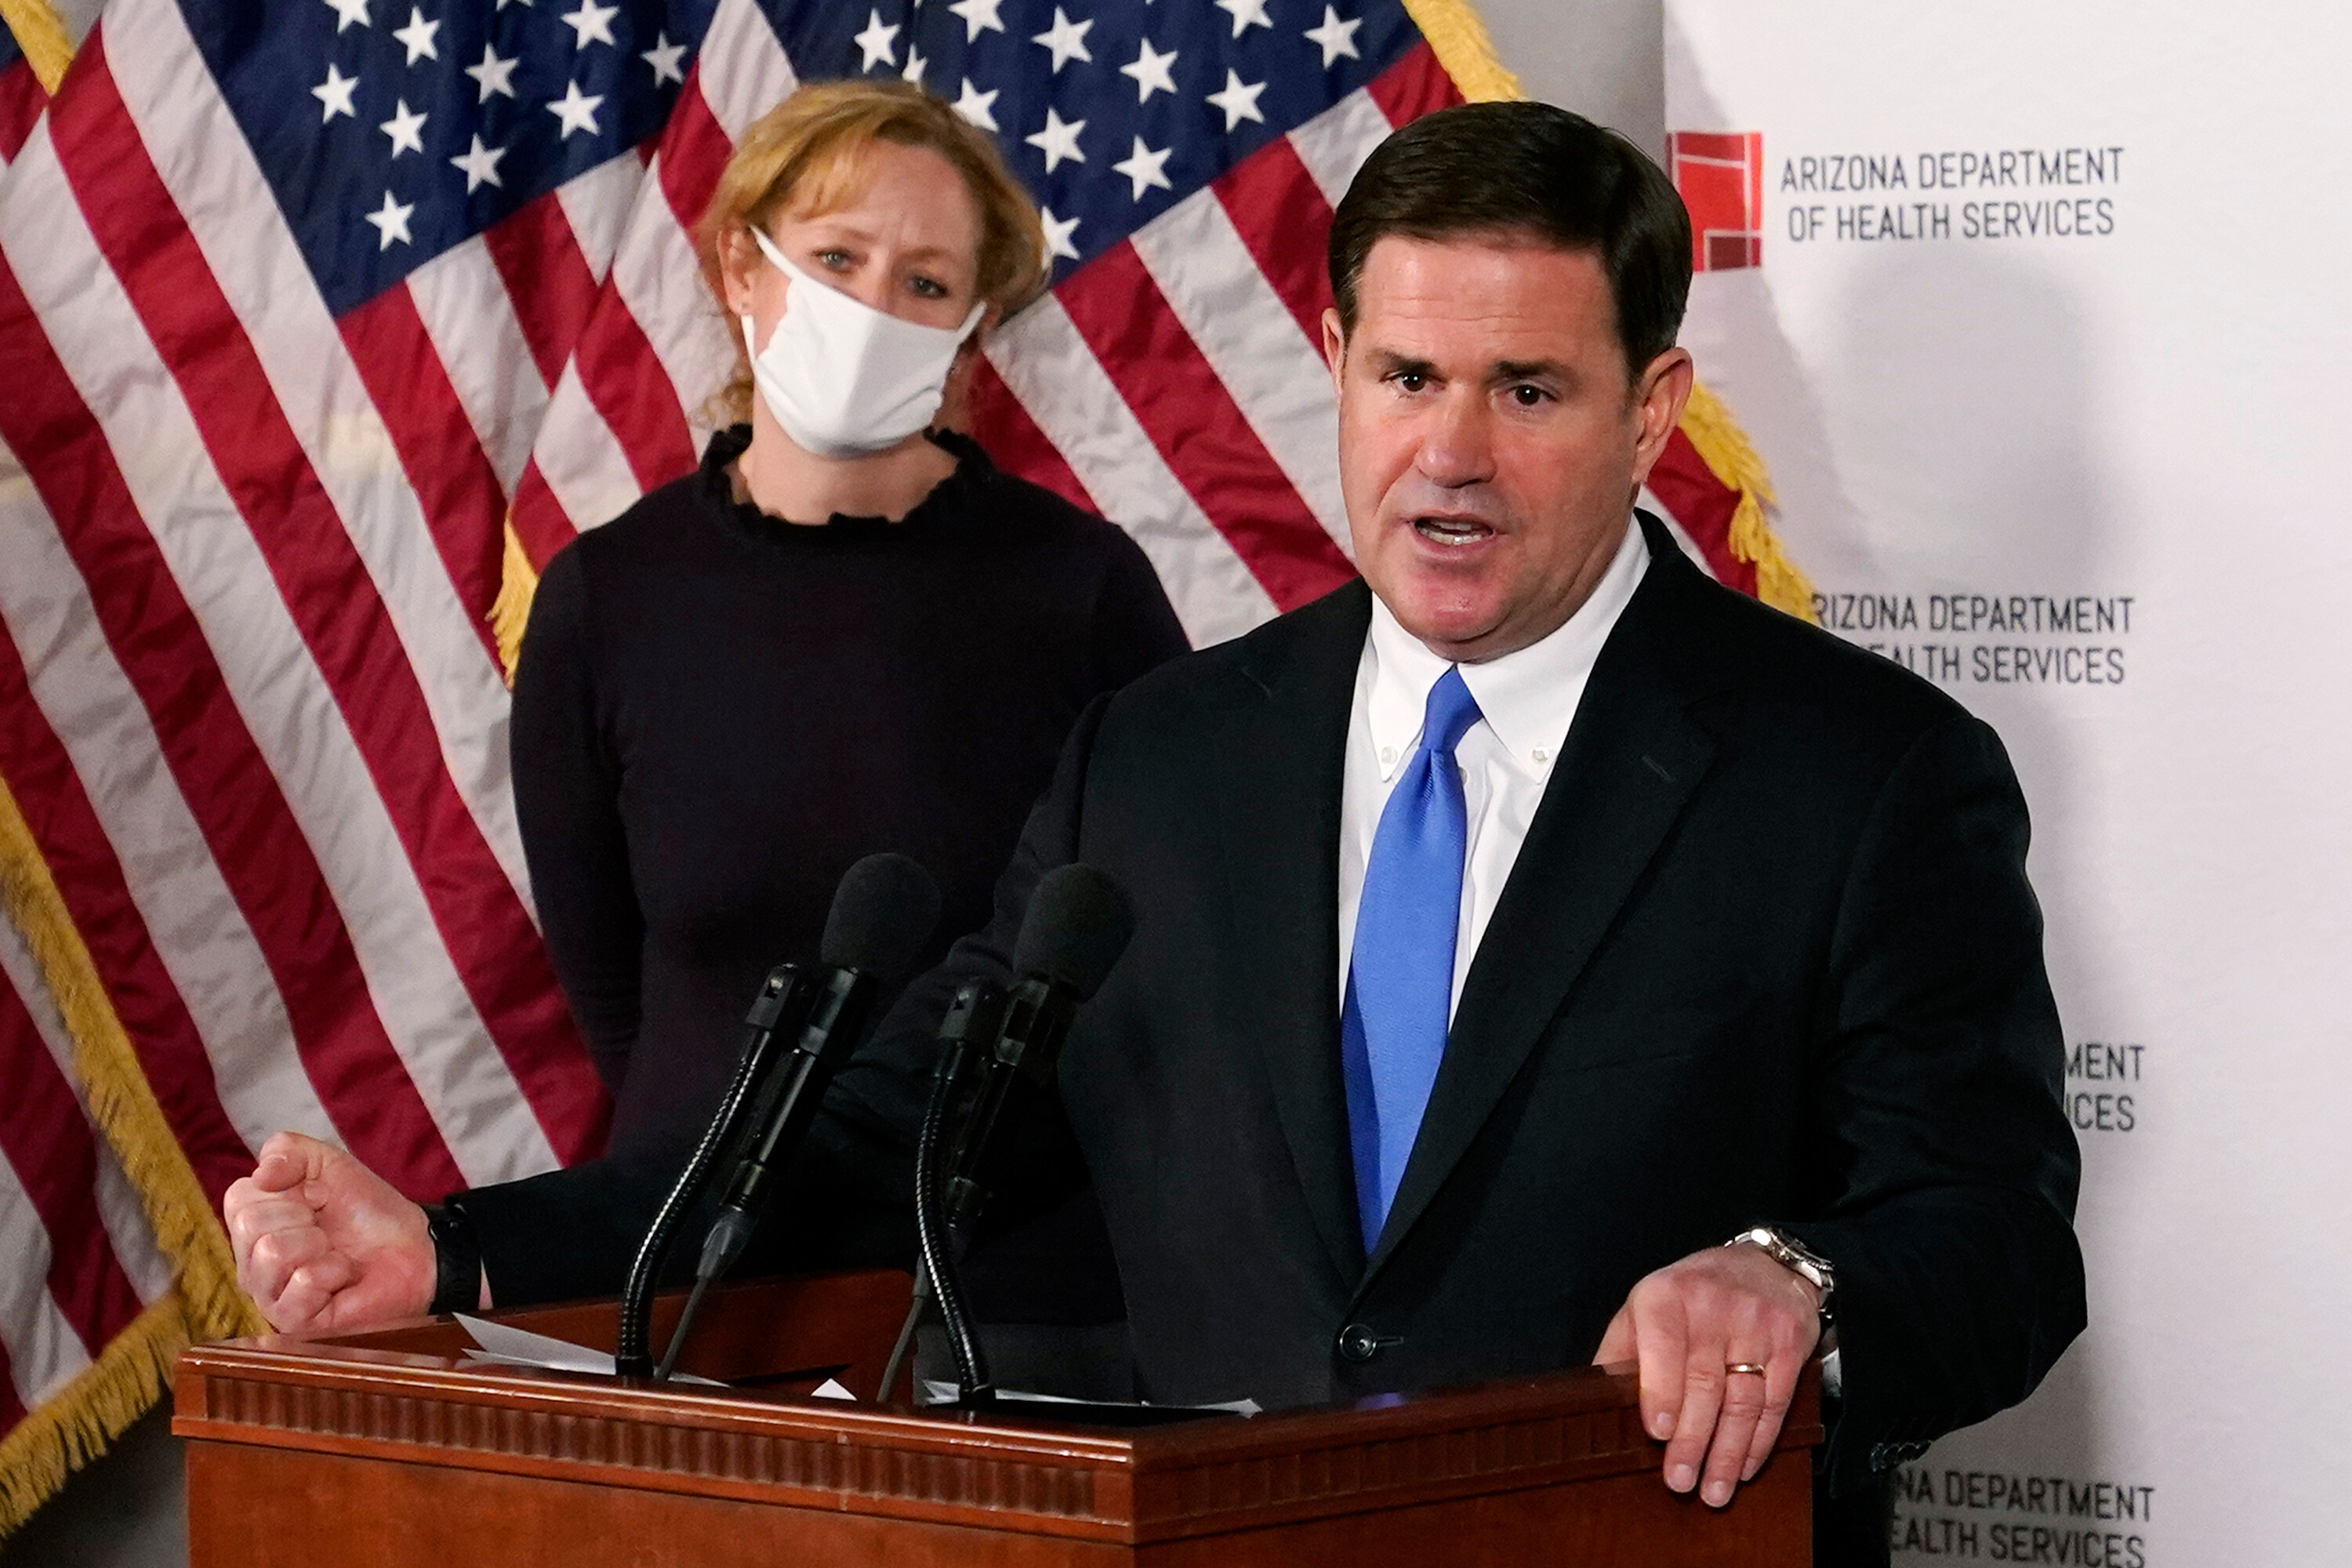 Treasury Department warns Arizona governor over using federal Covid funds for anti-mask school programs